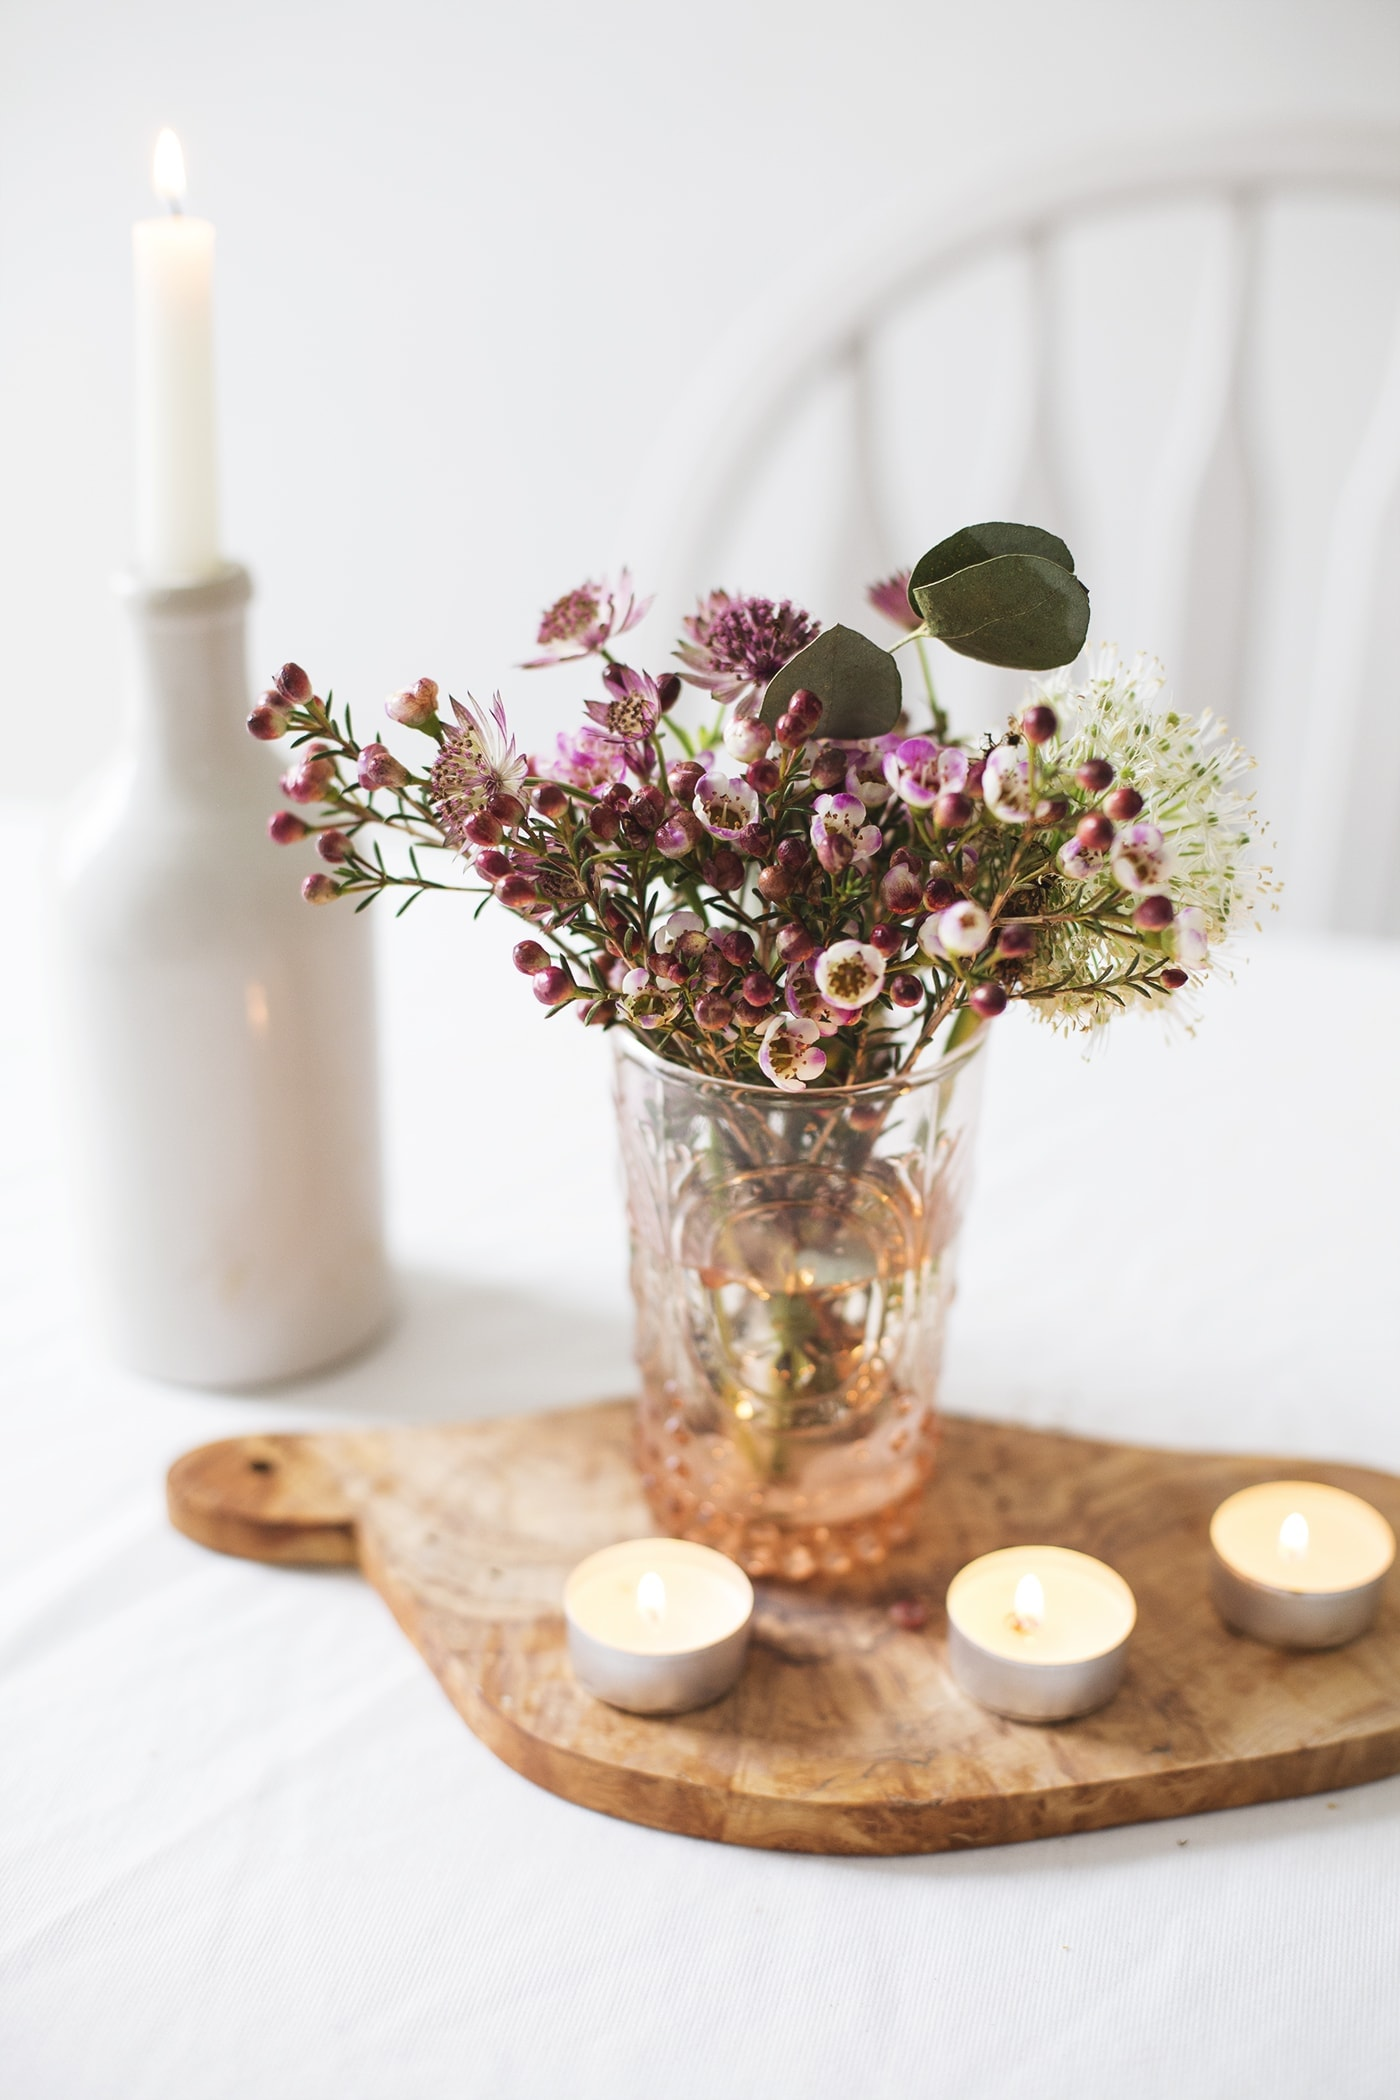 february styling the seasons | valentine's table